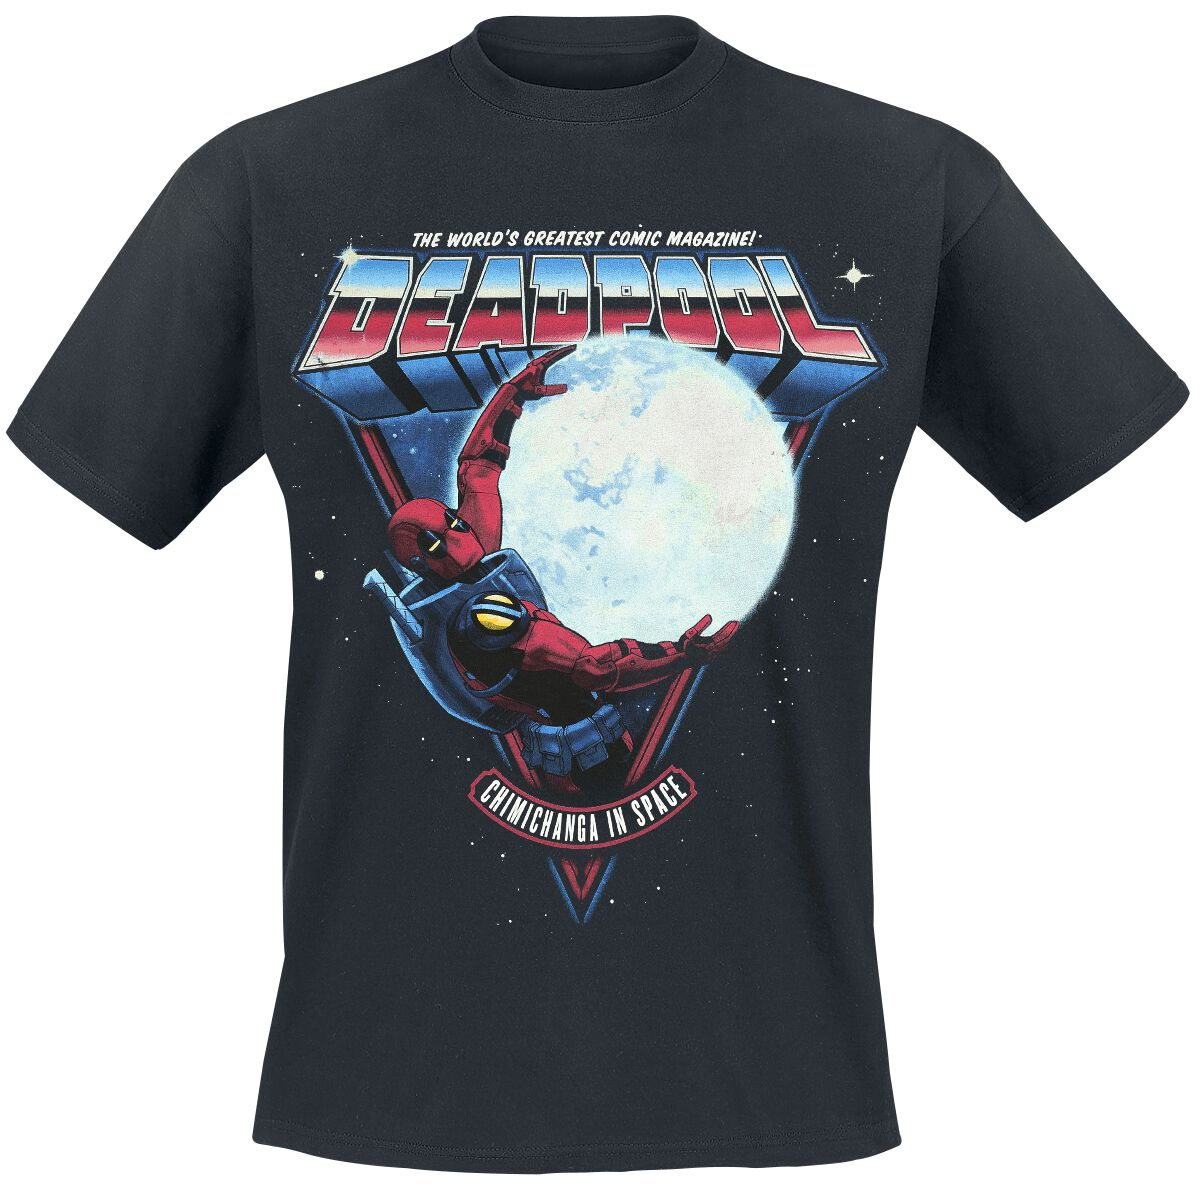 Image of   Deadpool Chimichangas In Space T-Shirt sort